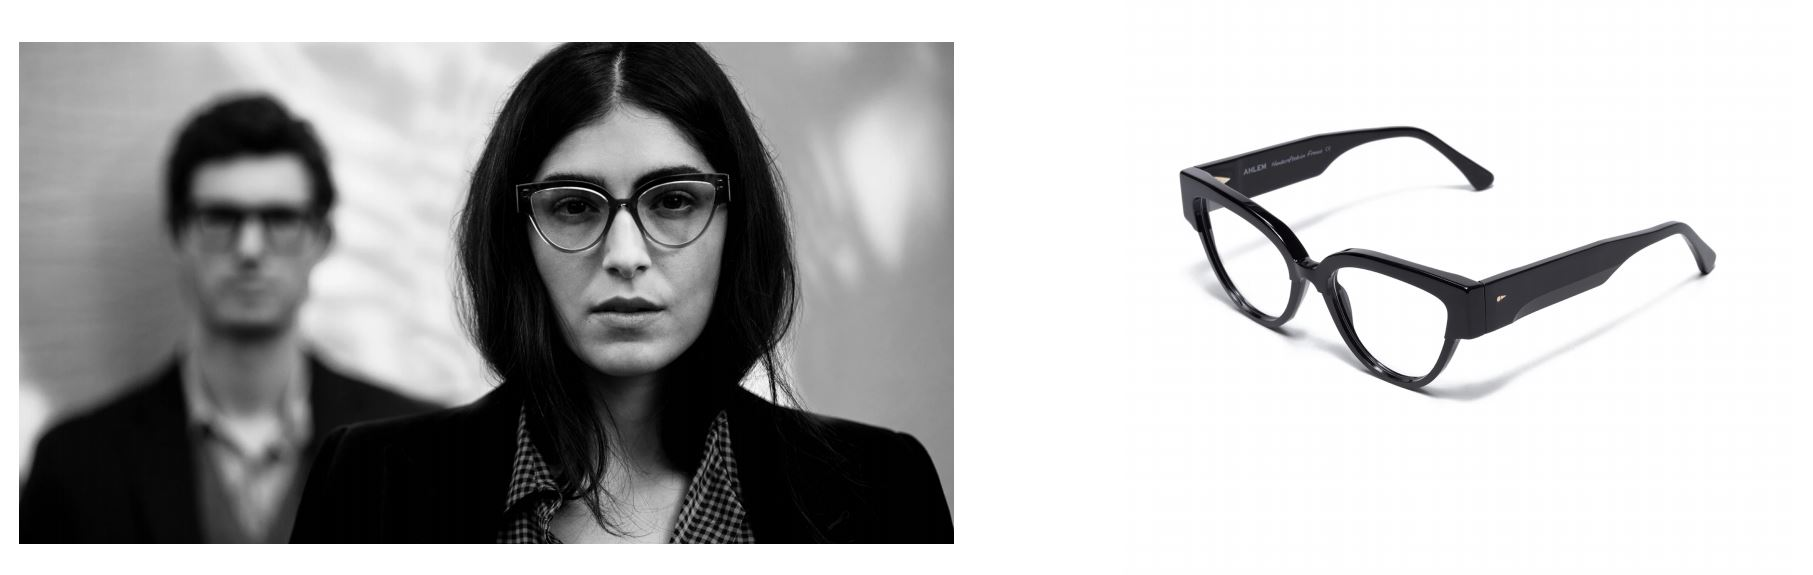 AHLEM Black and White woman and glasses 50:50